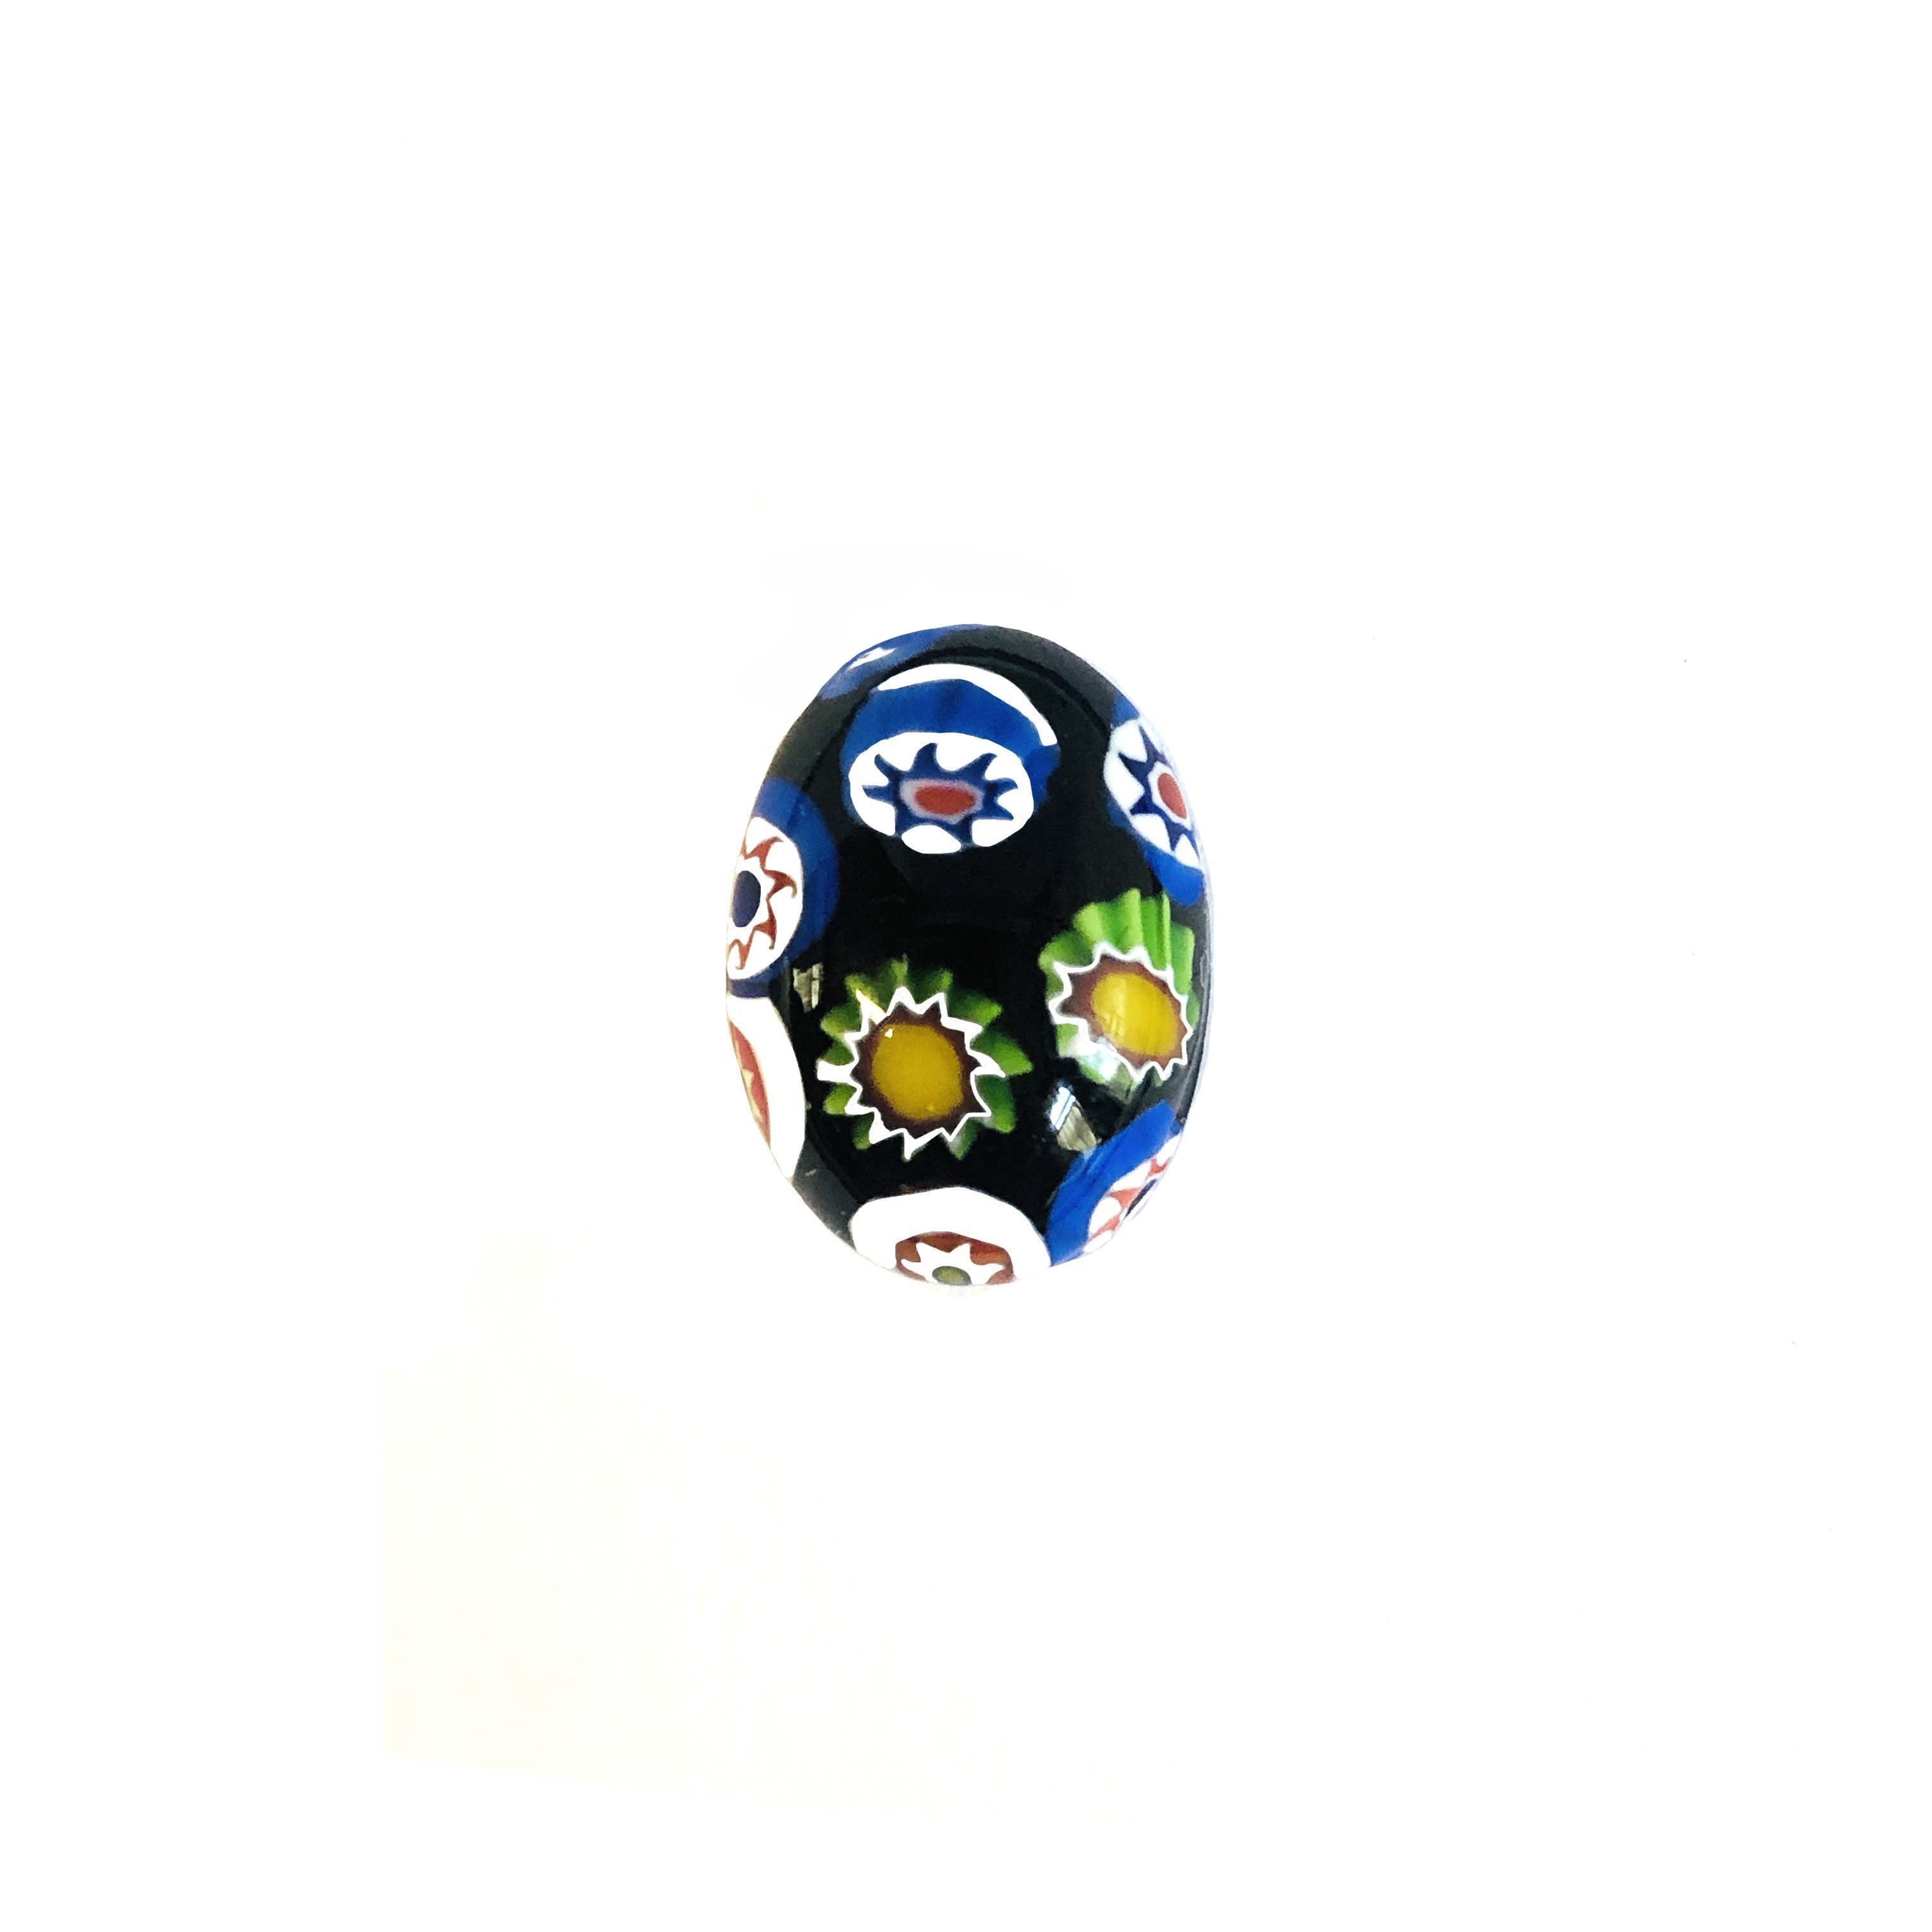 Czech Glass Stones, Glass Stones, black Millefiroi cabs, 0567, Millefiori cabochons, multi-colored stones, vintage jewelry supplies, Glass Cabs 18 x 13mm stones, flat back stones, Bsue Boutiques, handmade stones